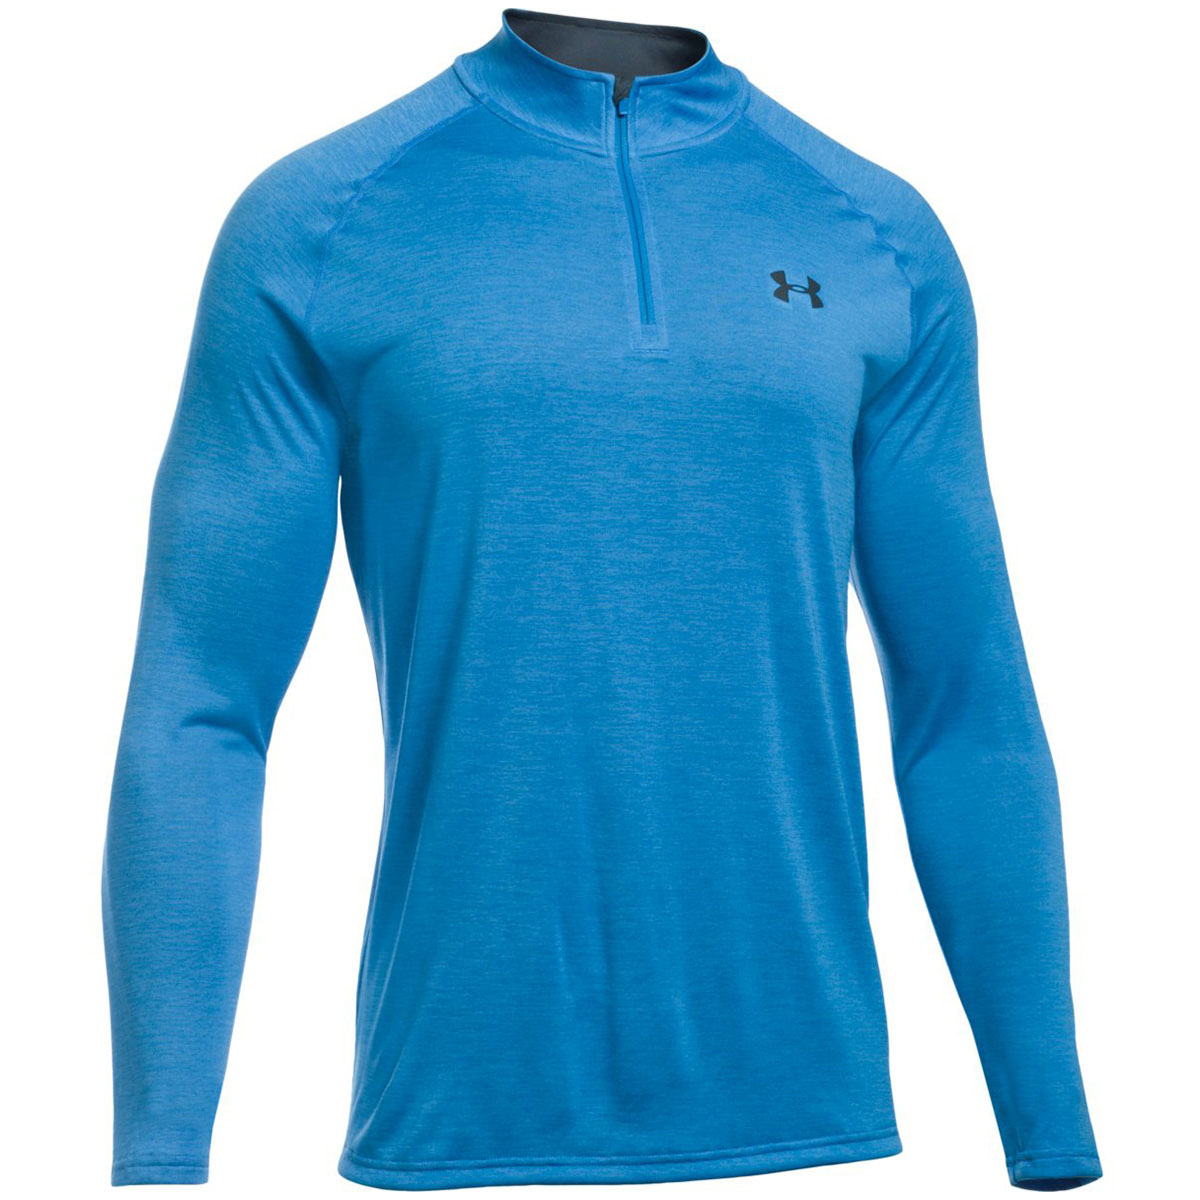 Under-Armour-Mens-UA-Tech-1-4-Zip-Long-Sleeve-Top-Workout-Layer-27-OFF-RRP thumbnail 38